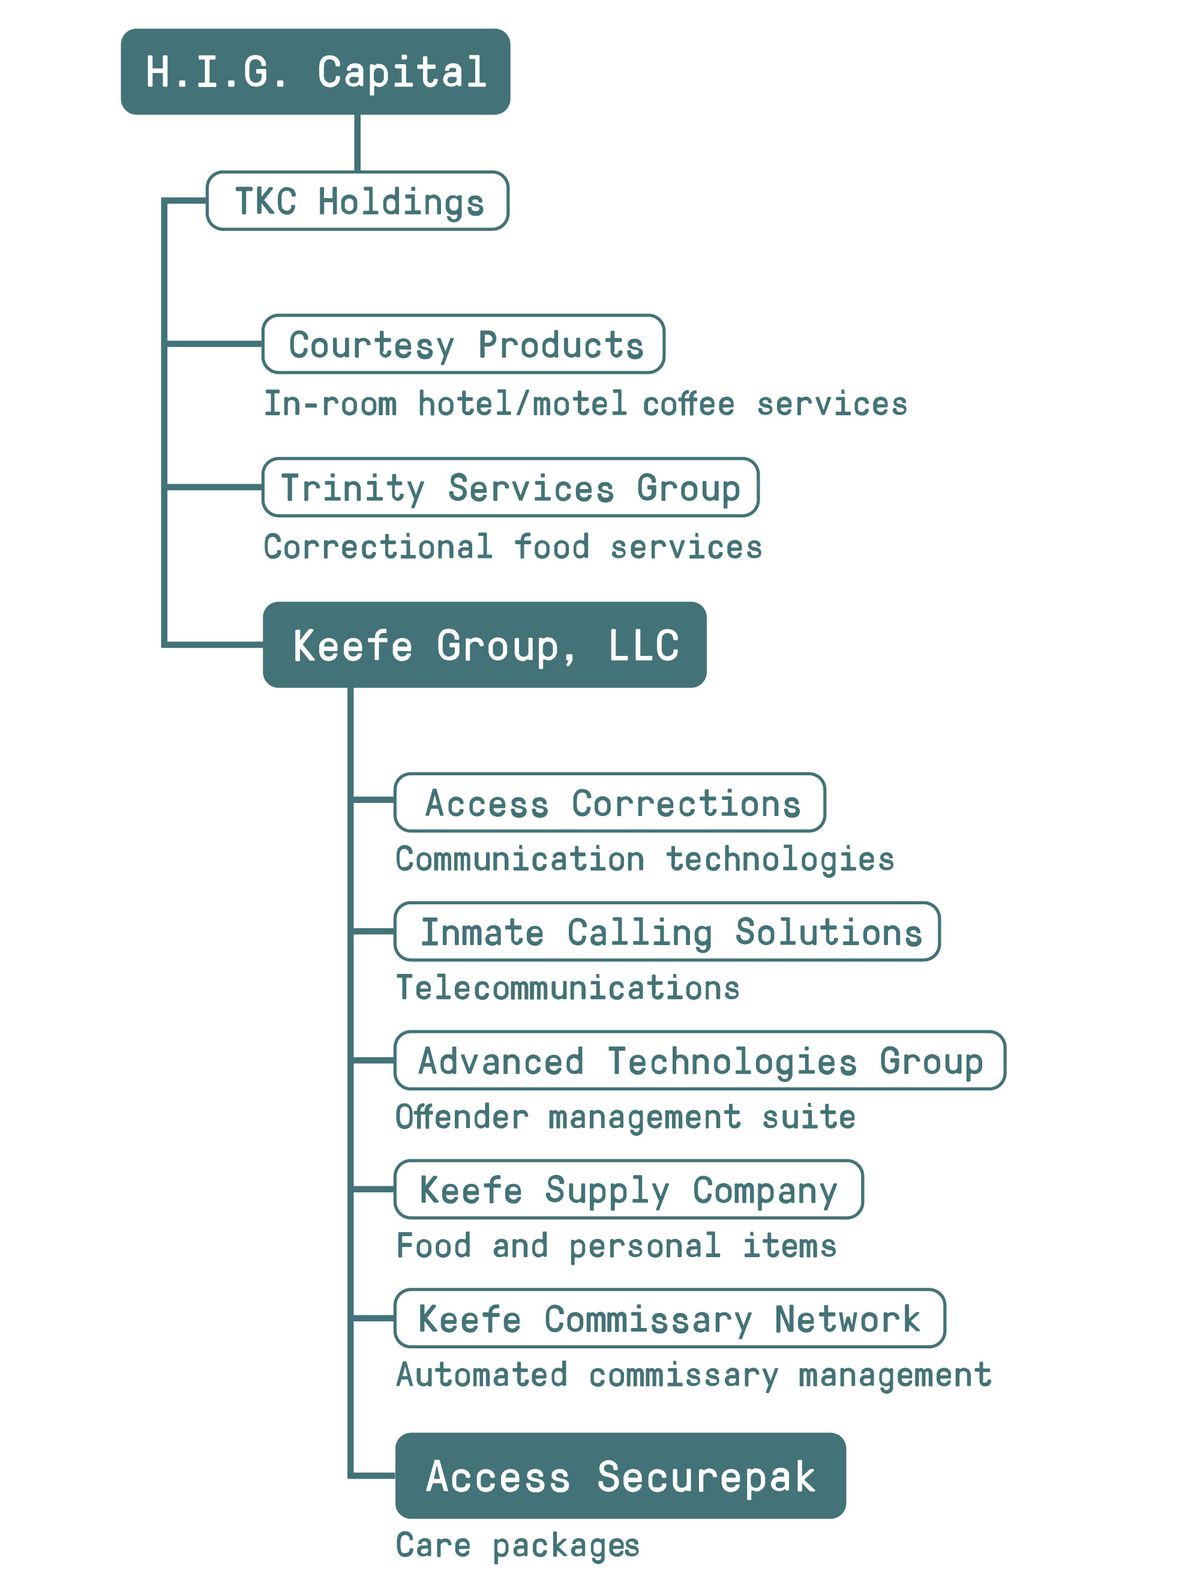 hight resolution of keefe group based in st louis missouri is comprised of several companies